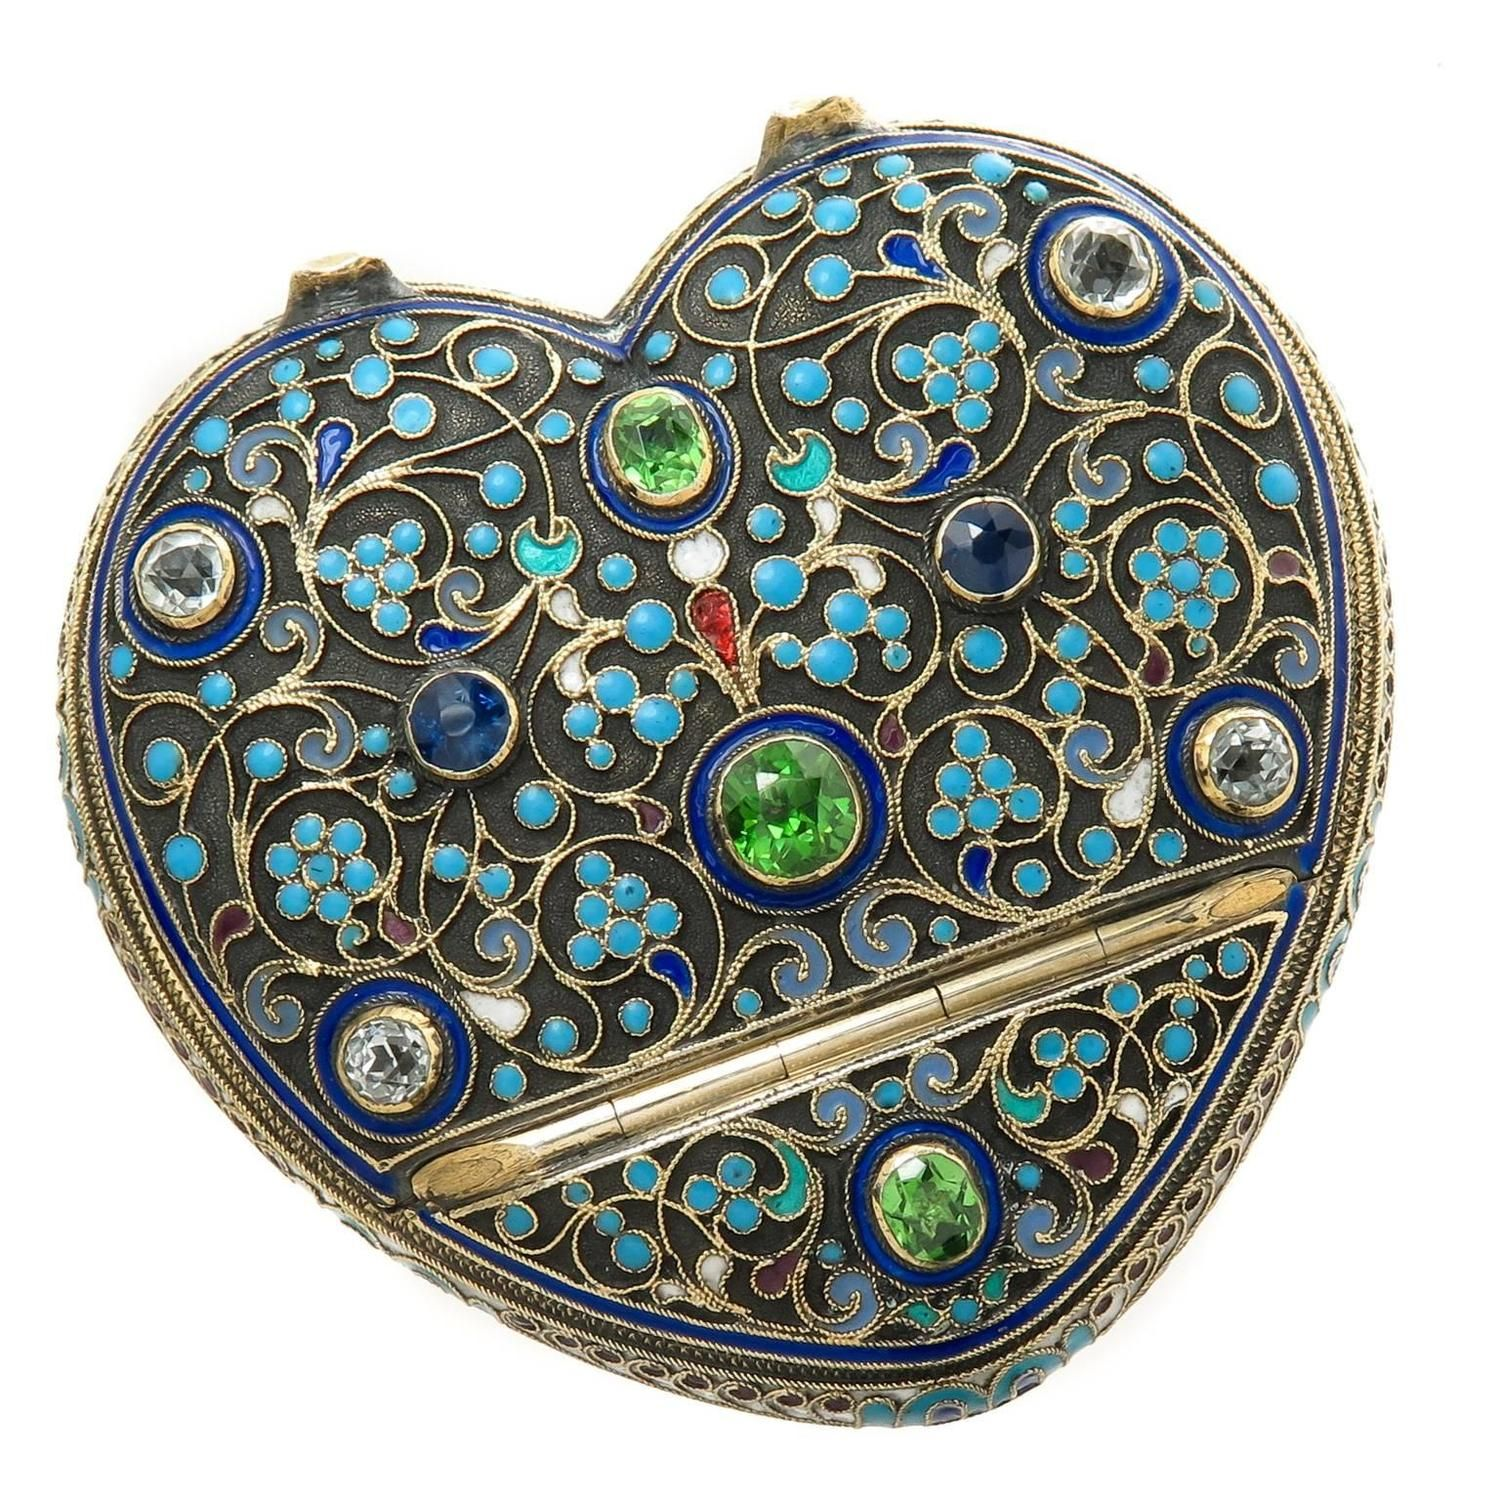 Russian Enamel and Gem set Heart shape box for Tiffany & Company | Circa 1890 Russian Silver and Cloisonee Enamel, Heat shape Trinket box for Tiffany & Company, Centrally set with a very fine Cushion cut Green Demantoid Garnet measuring at 1 Carat and two additional Cushion cut Demantoid Garnets measuring at 1/2 carat each, further set with Blue and White Sapphires.